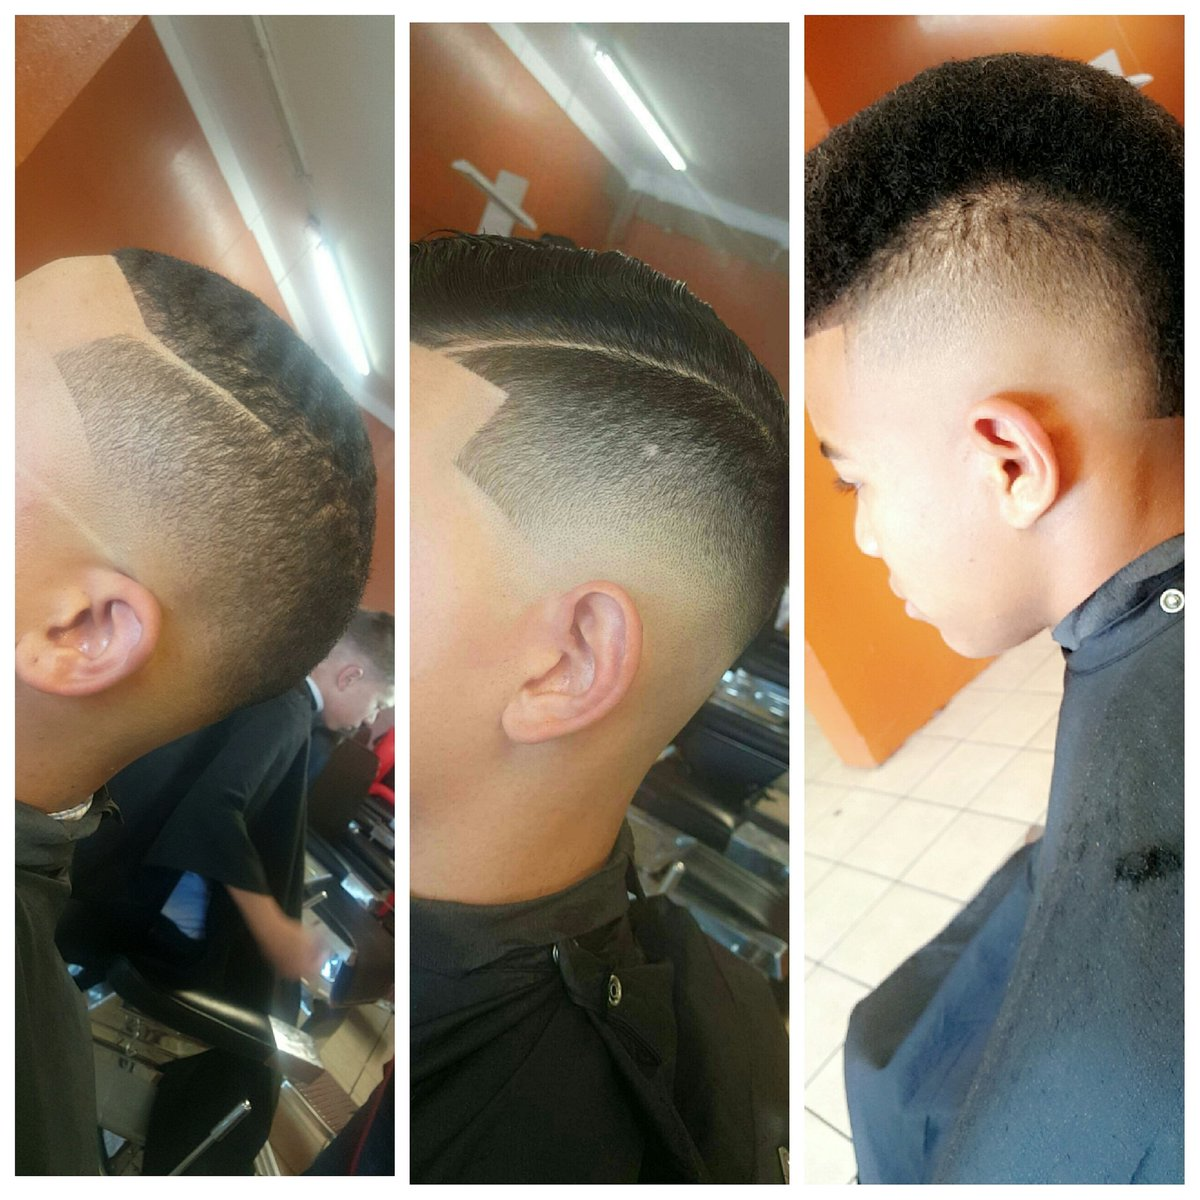 Nick Tha Barber On Twitter Book Your Next Haircut Appointment